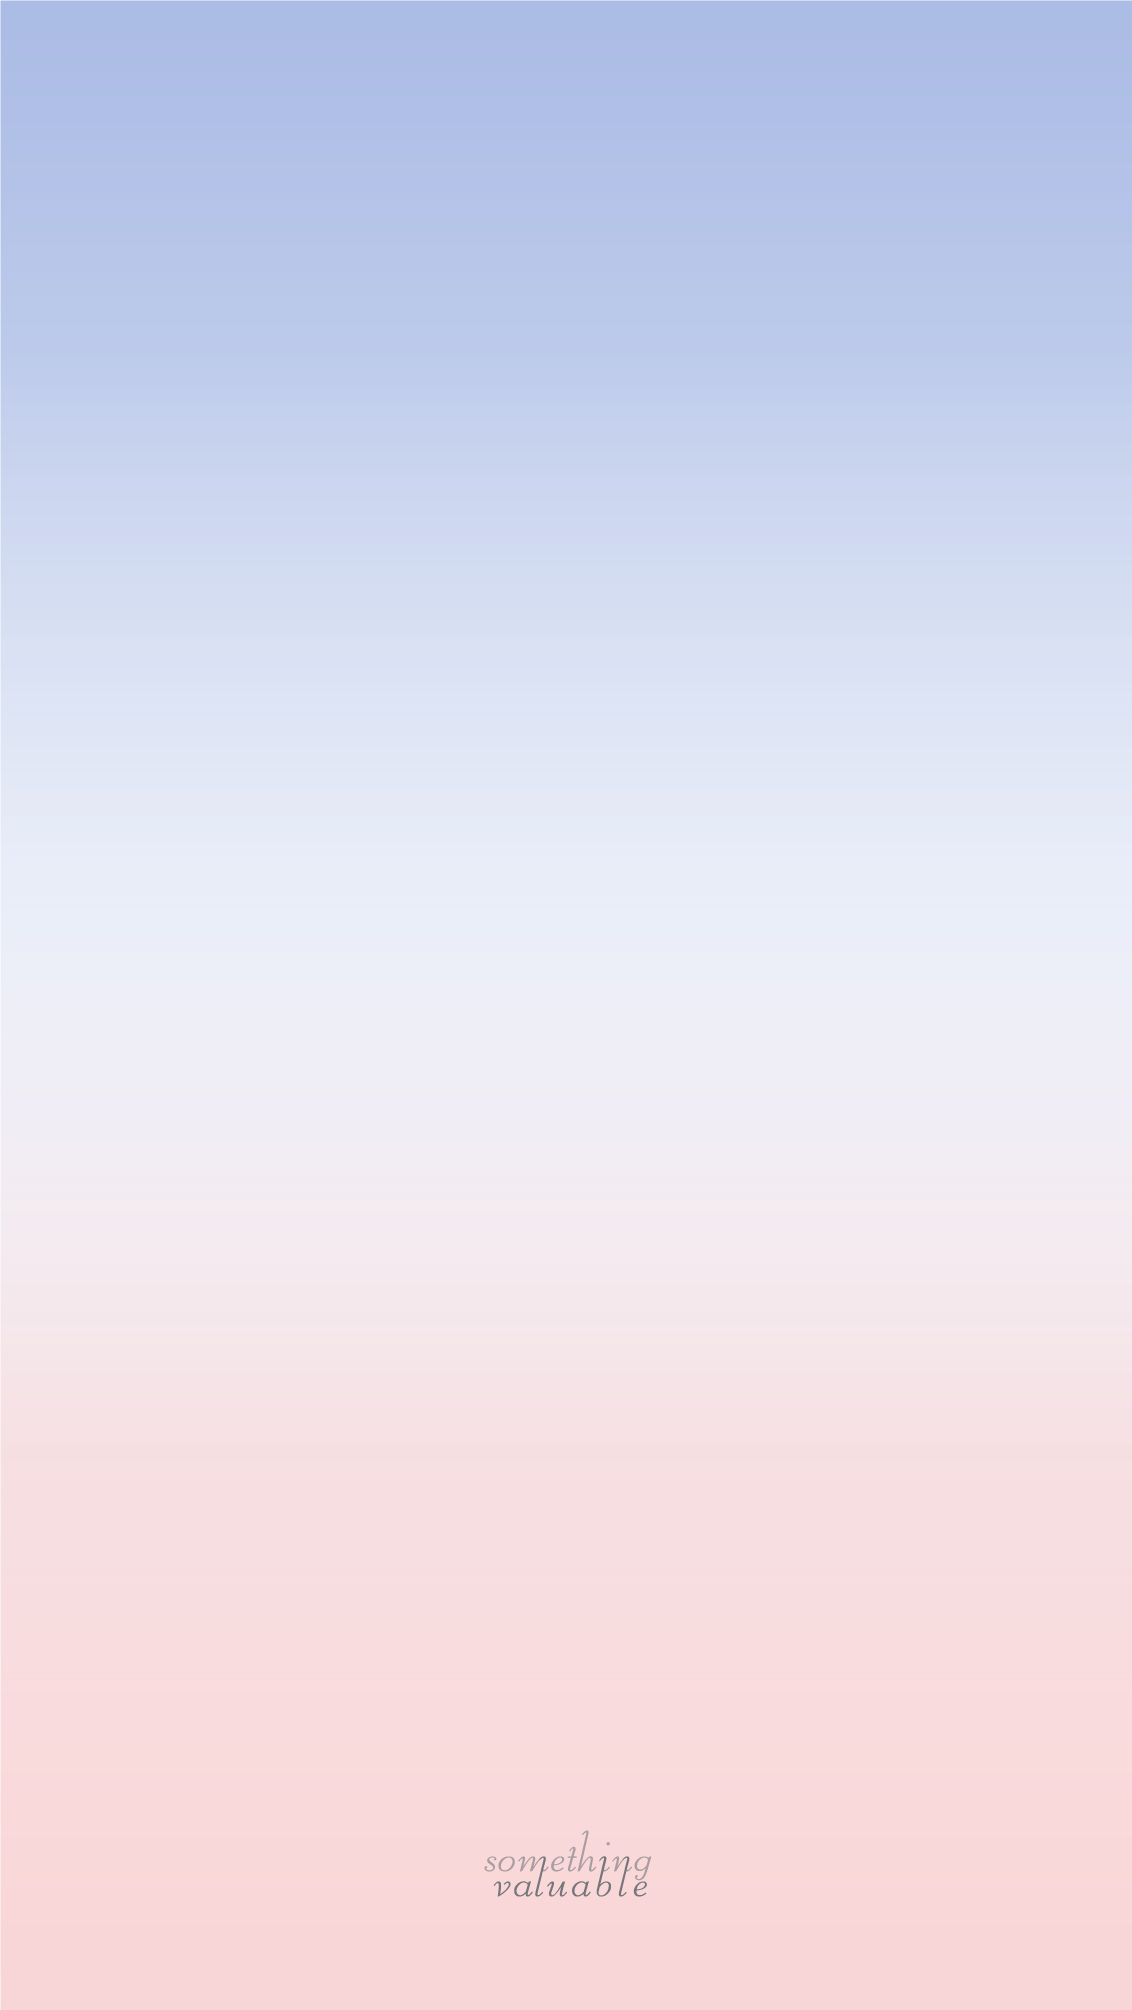 Iphone Wallpaper Design Rose Quartz Ë¡œì¦ˆì¿¼ì¸  Serenity ̄¸ë ˆë‹ˆí‹° Http Blog Naver Com Parksuyeon52 Planos De Fundo Imagem De Fundo Para Iphone Wallpaper Paisagem